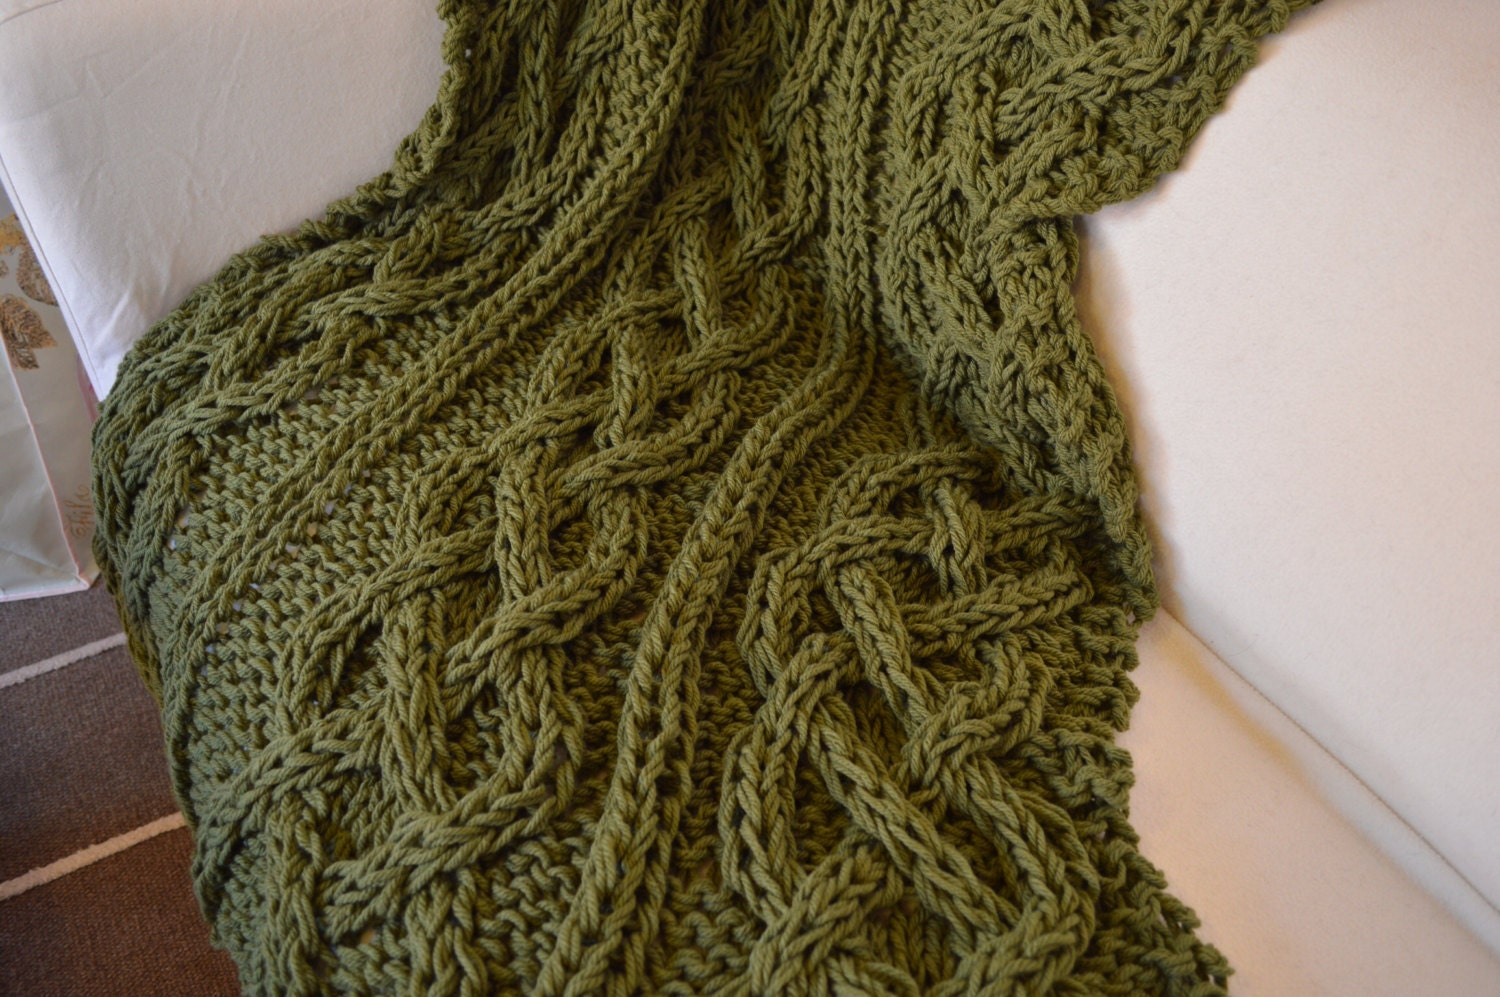 Chunky Cable Knit Blanket Pattern : Chunky hand knitted cable blanket / throw Leaf Green